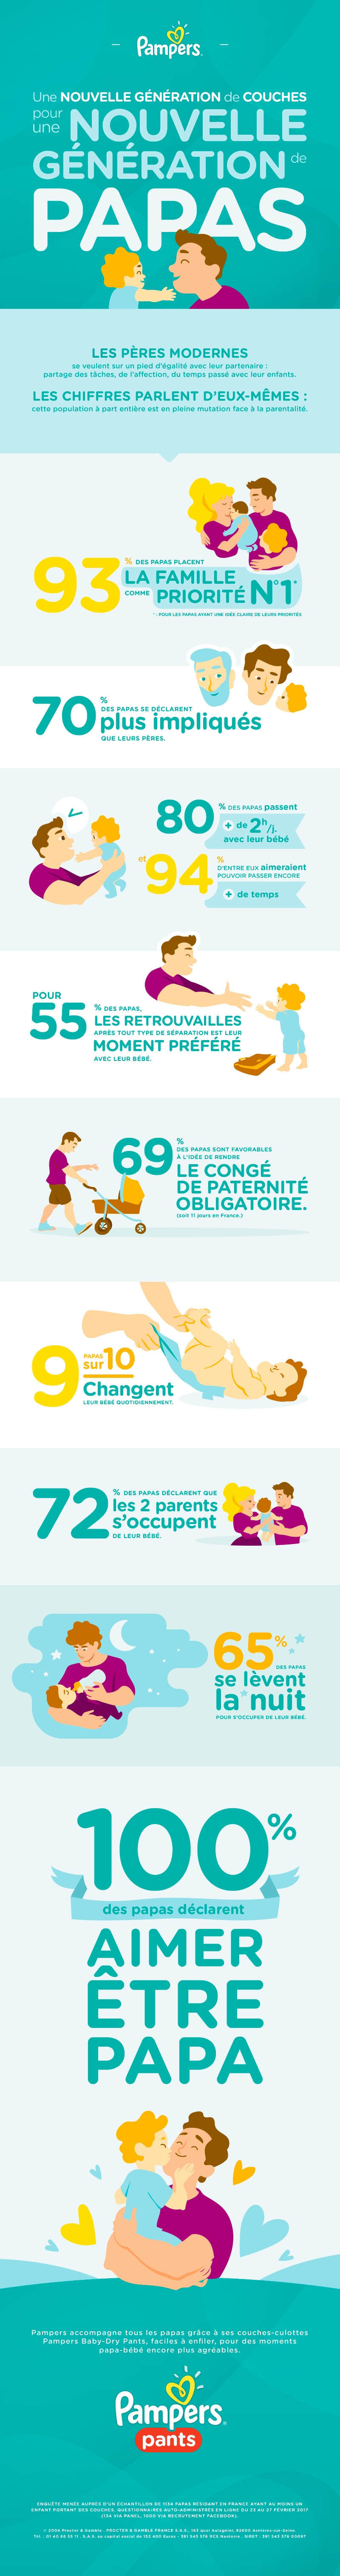 infographie-pampers